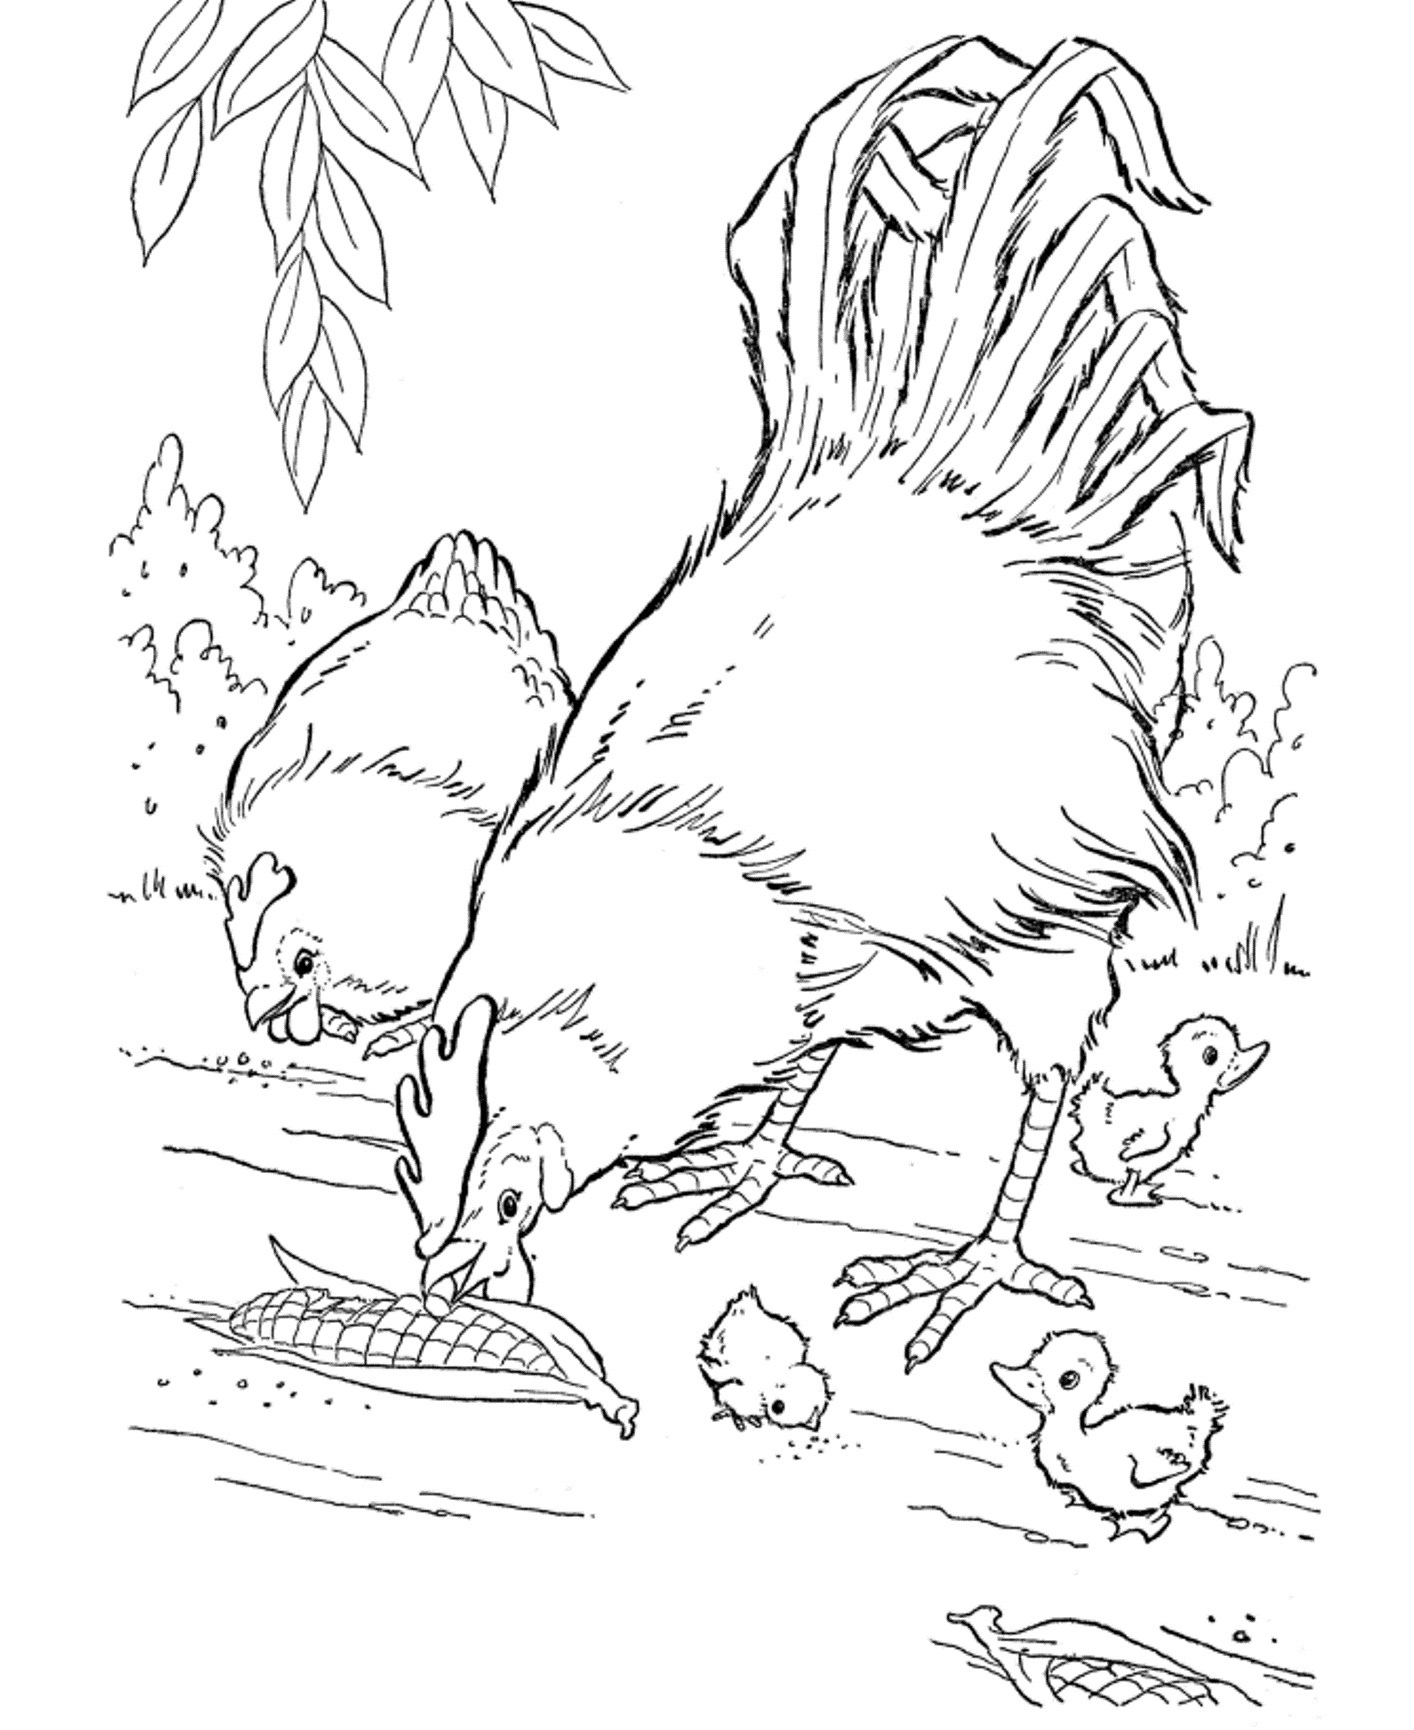 farm animals coloring page - Farm Coloring Pages